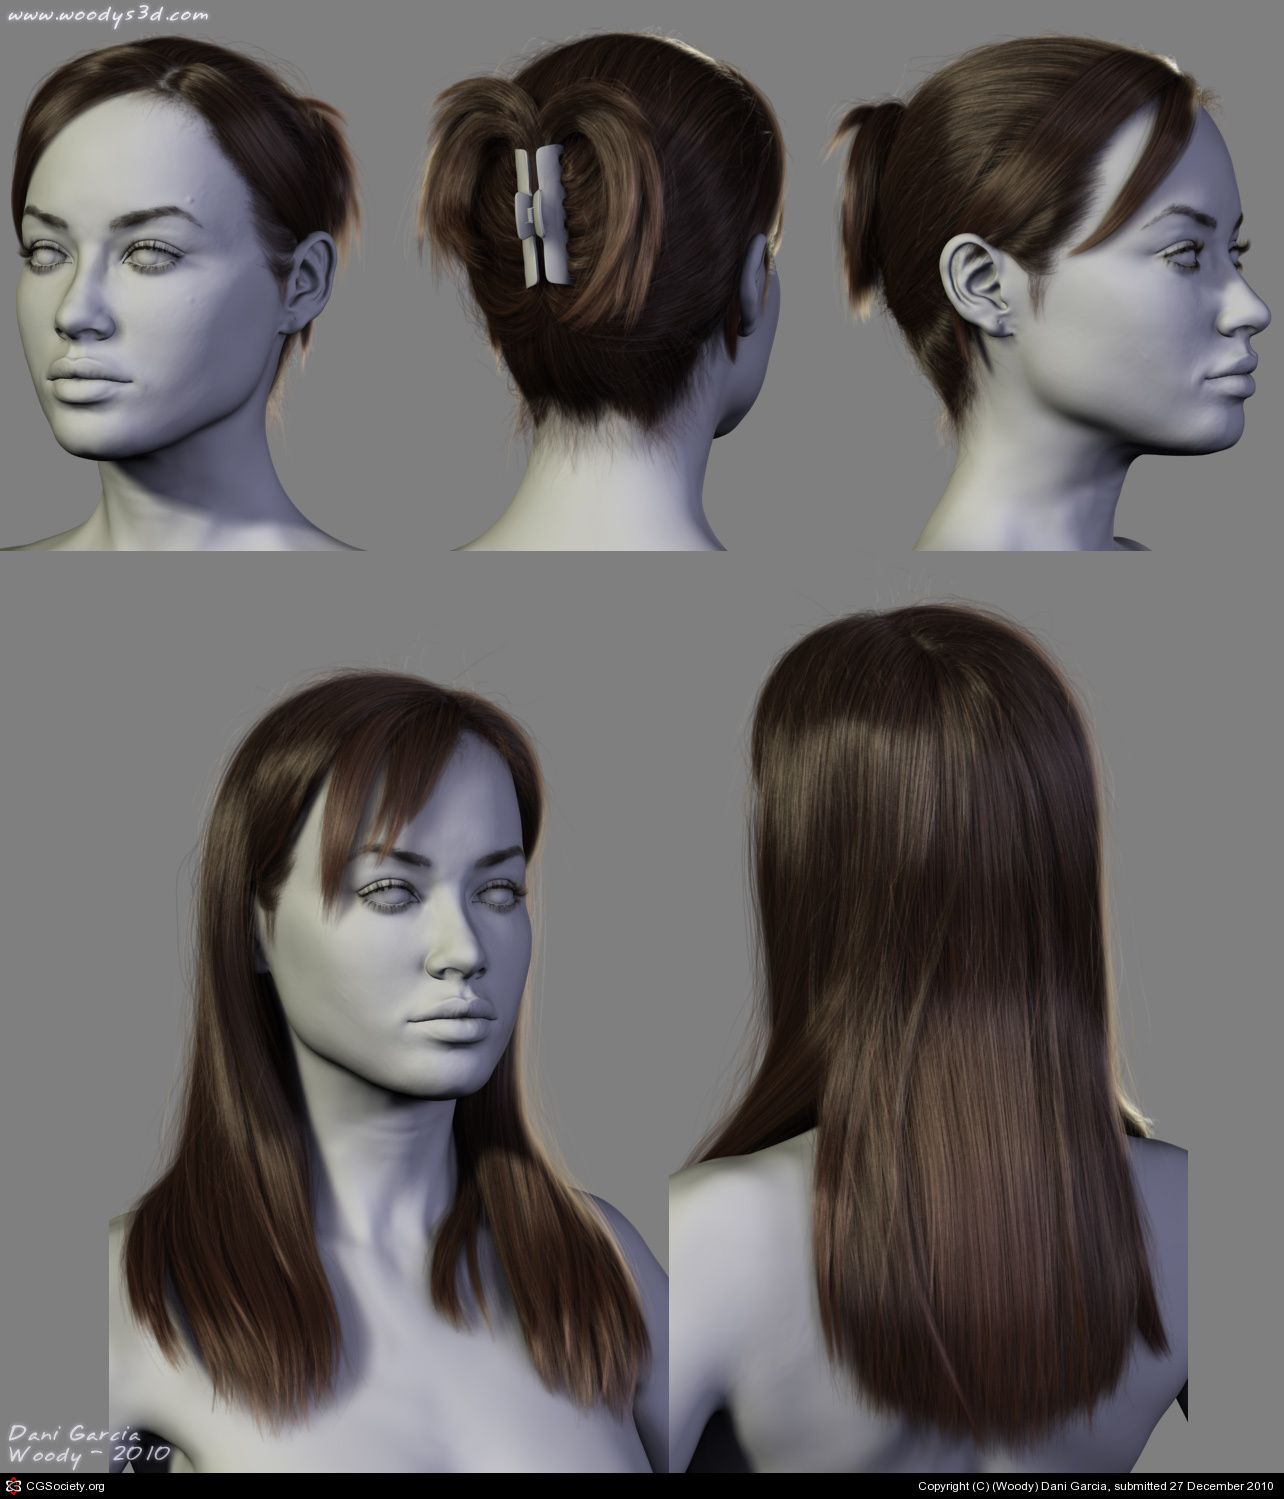 3d hair style 4 new hairstyles 2 by woody garcia 3d 6429 | 5e7d60157bbea6e783ea743b7b5061d3